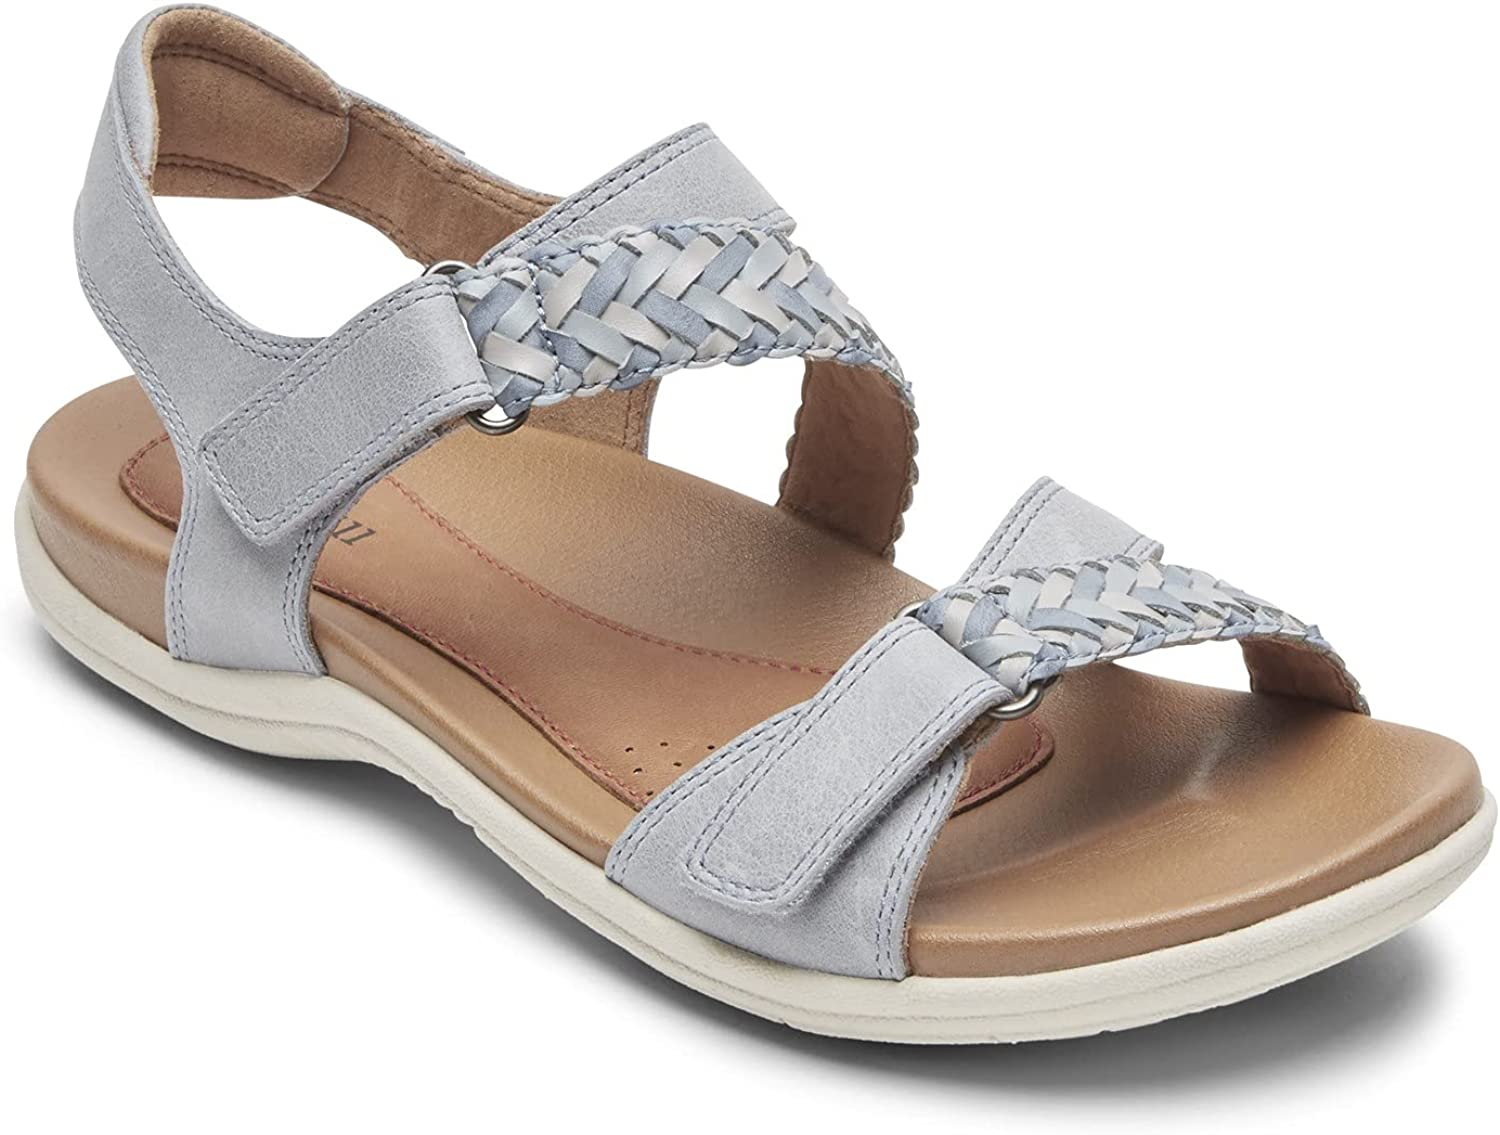 Cobb Hill Rubey Braided Comfort Selling Industry No. 1 Women's Sandal